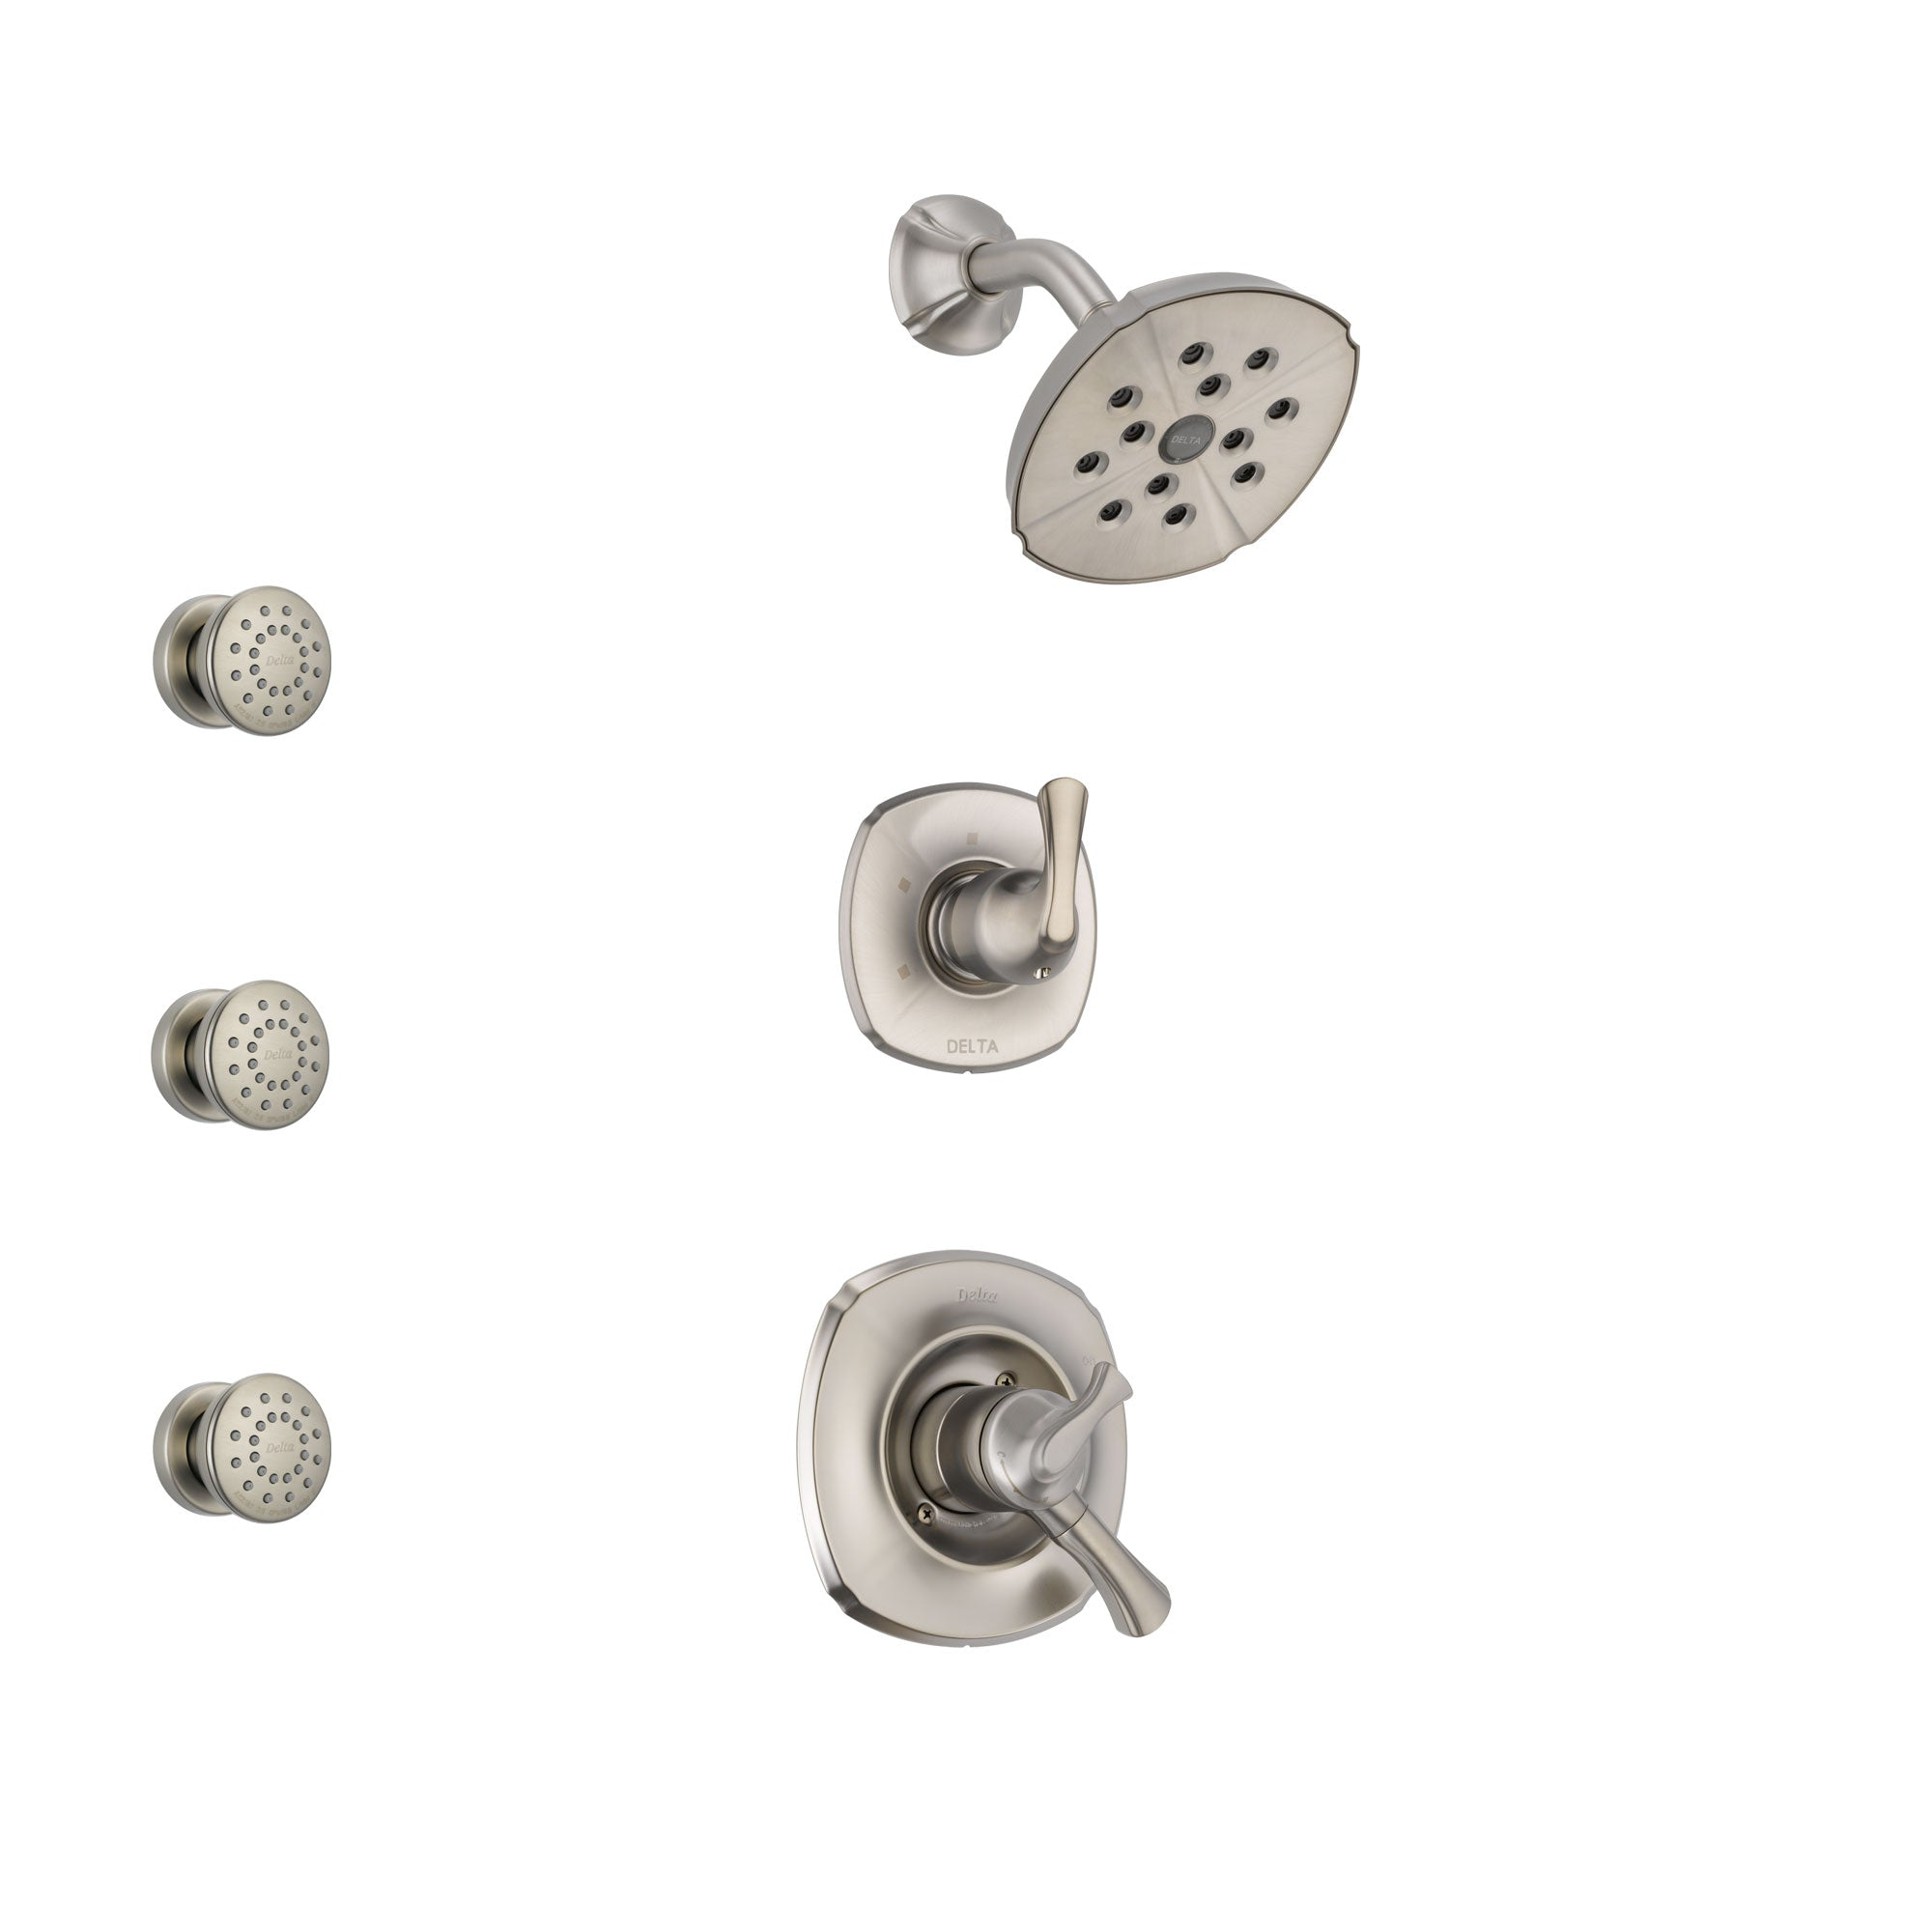 Delta Addison Stainless Steel Finish Shower System with Dual Control Handle, 3-Setting Diverter, Showerhead, and 3 Body Sprays SS17292SS1